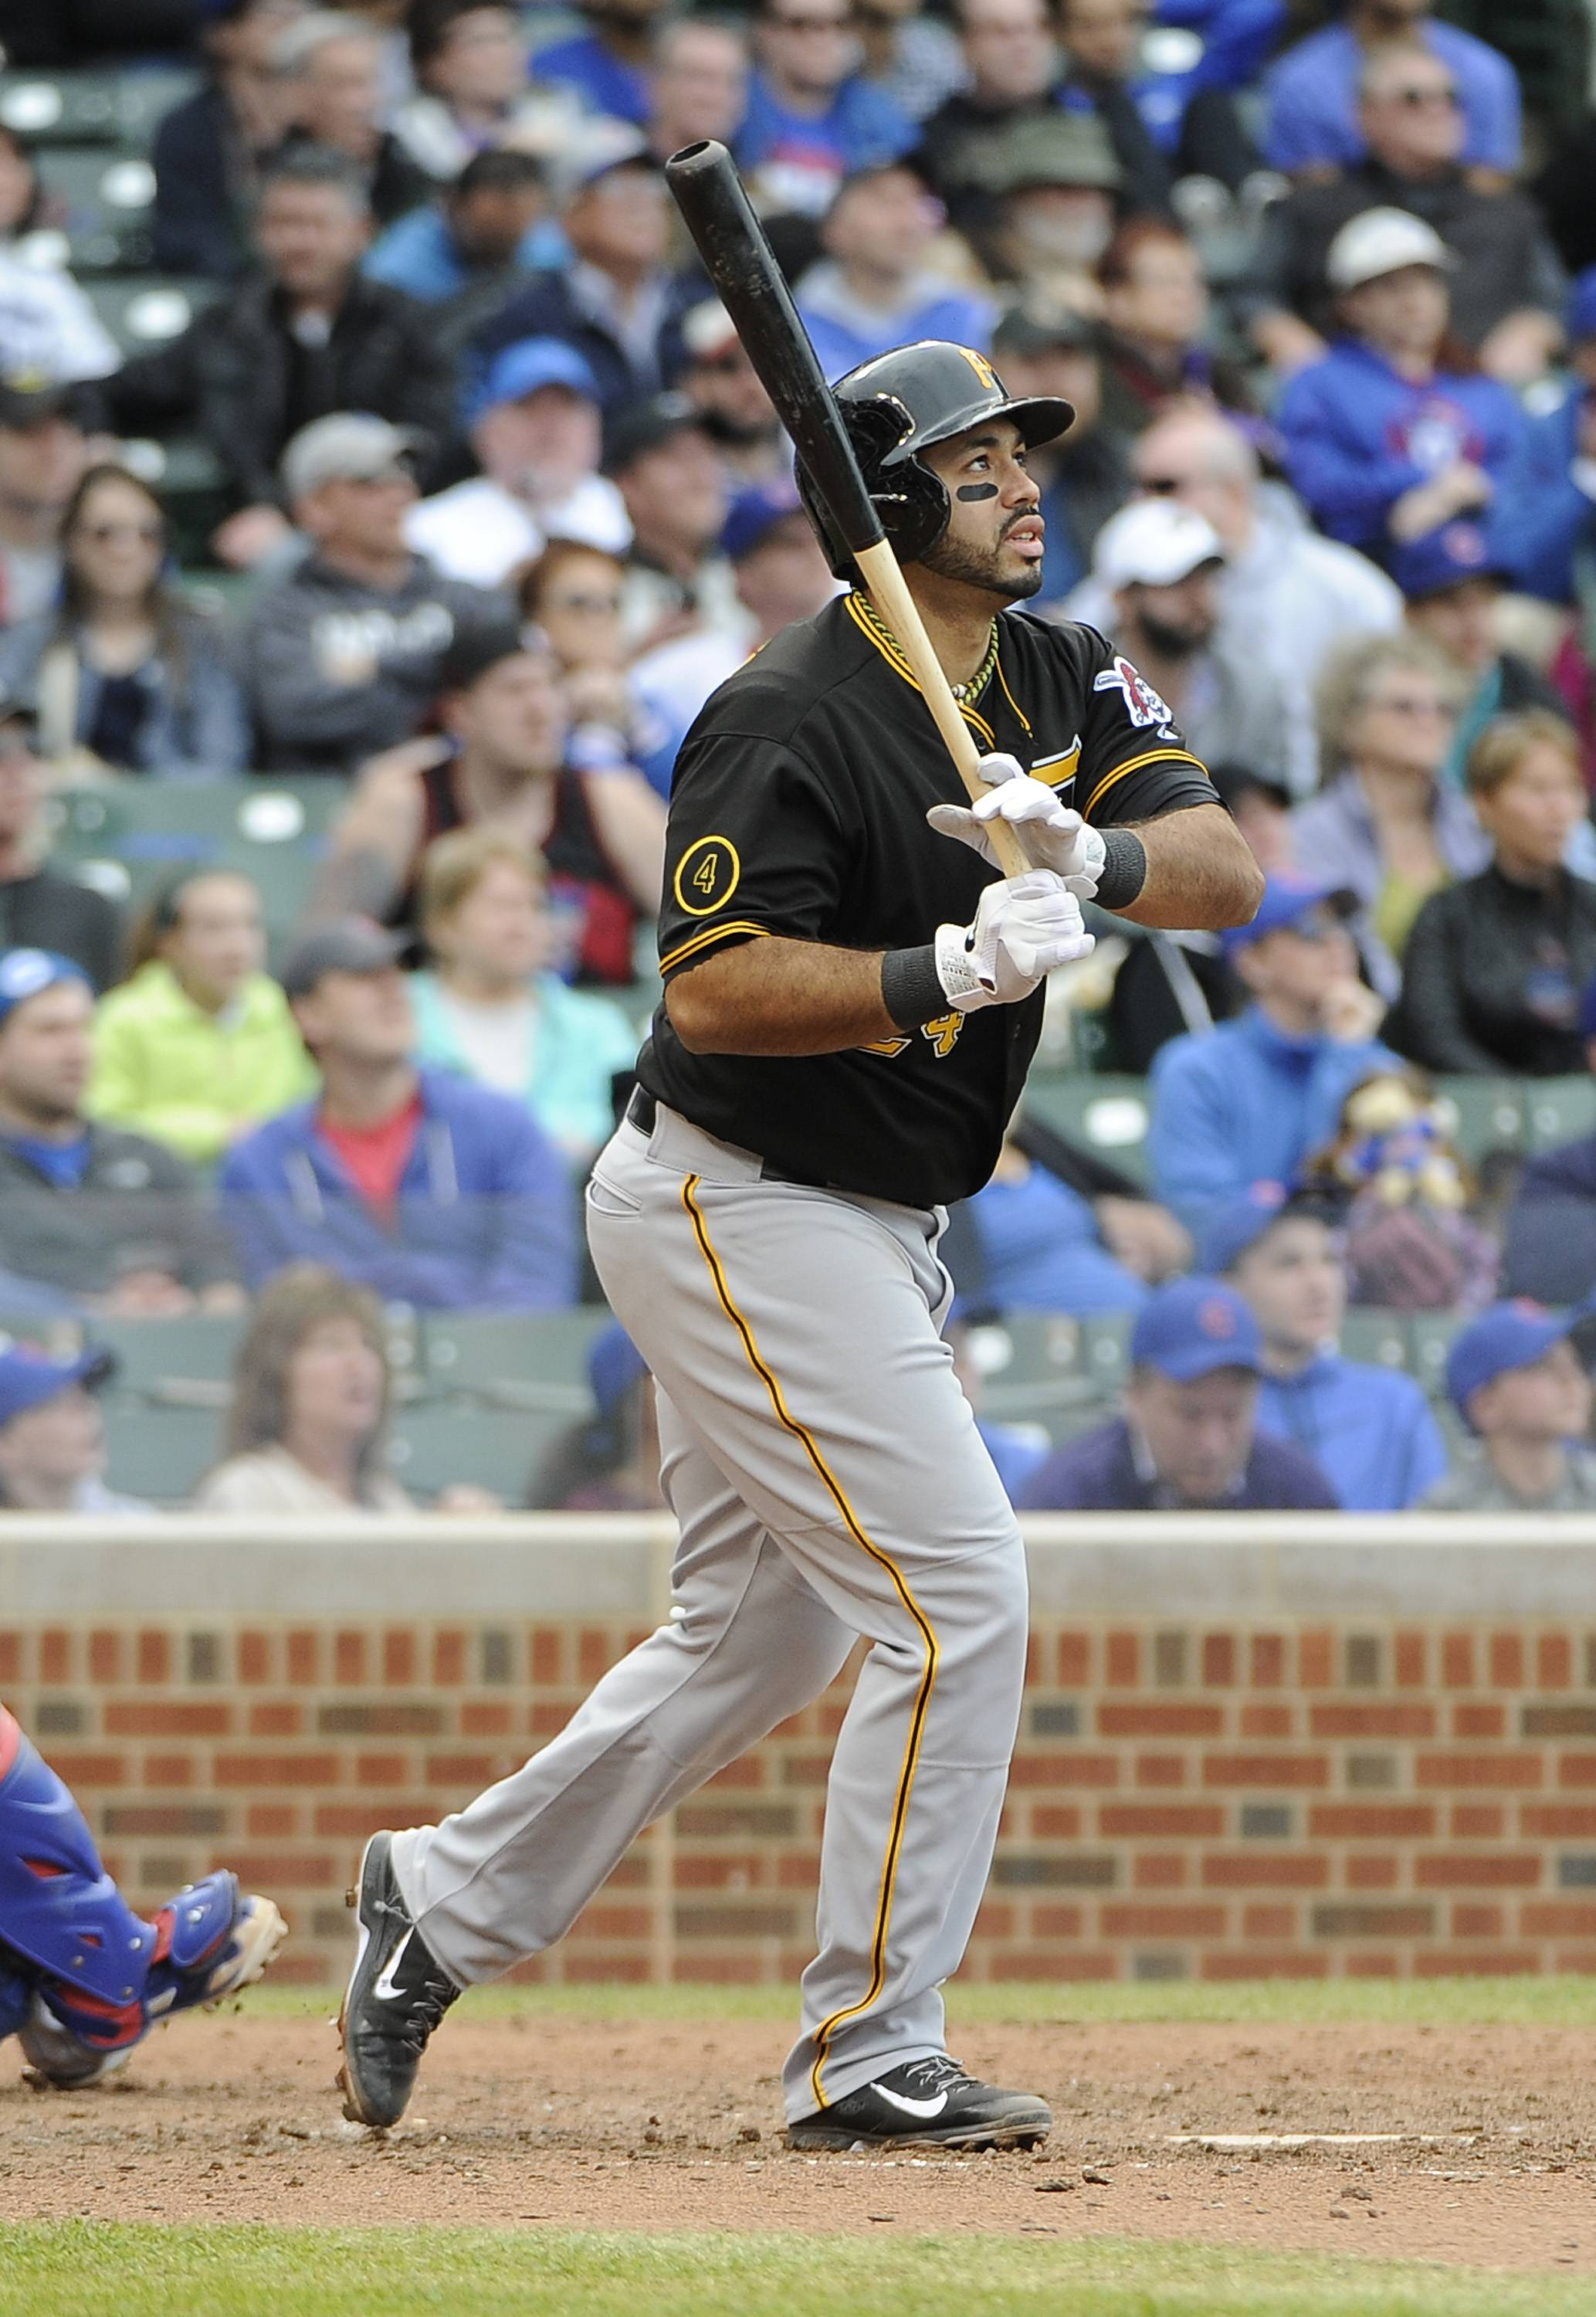 Pittsburgh Pirates' Pedro Alvarez watches his  three-run home run against the Chicago Cubs during the seventh inning of a baseball game on Thursday, April 10, 2014, in Chicago.